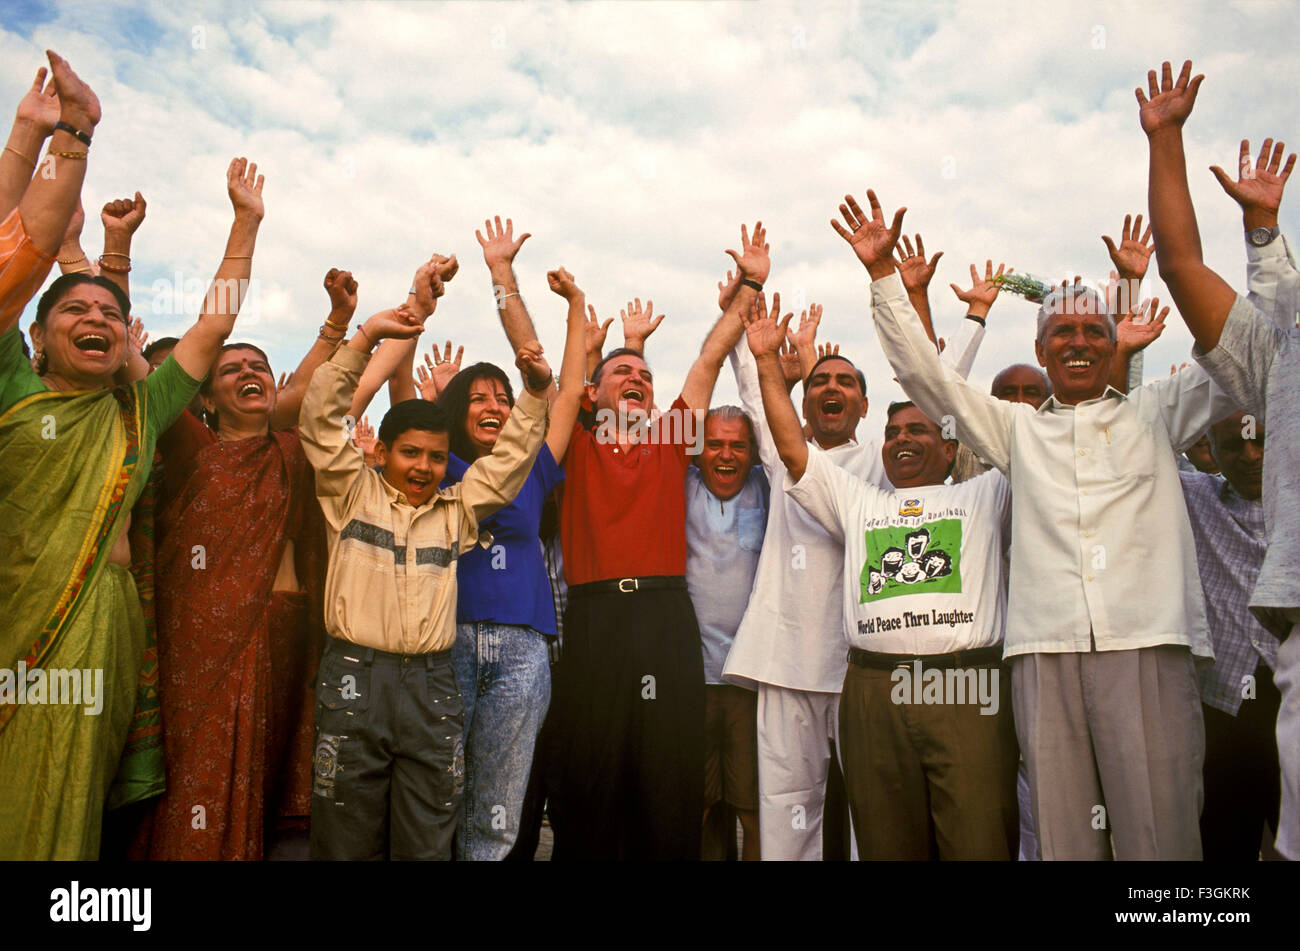 Dr. Madan Kataria ; founder of Laughter Yoga which has over 6000 Laughter Clubs in 60 countries Mumbai India - Stock Image